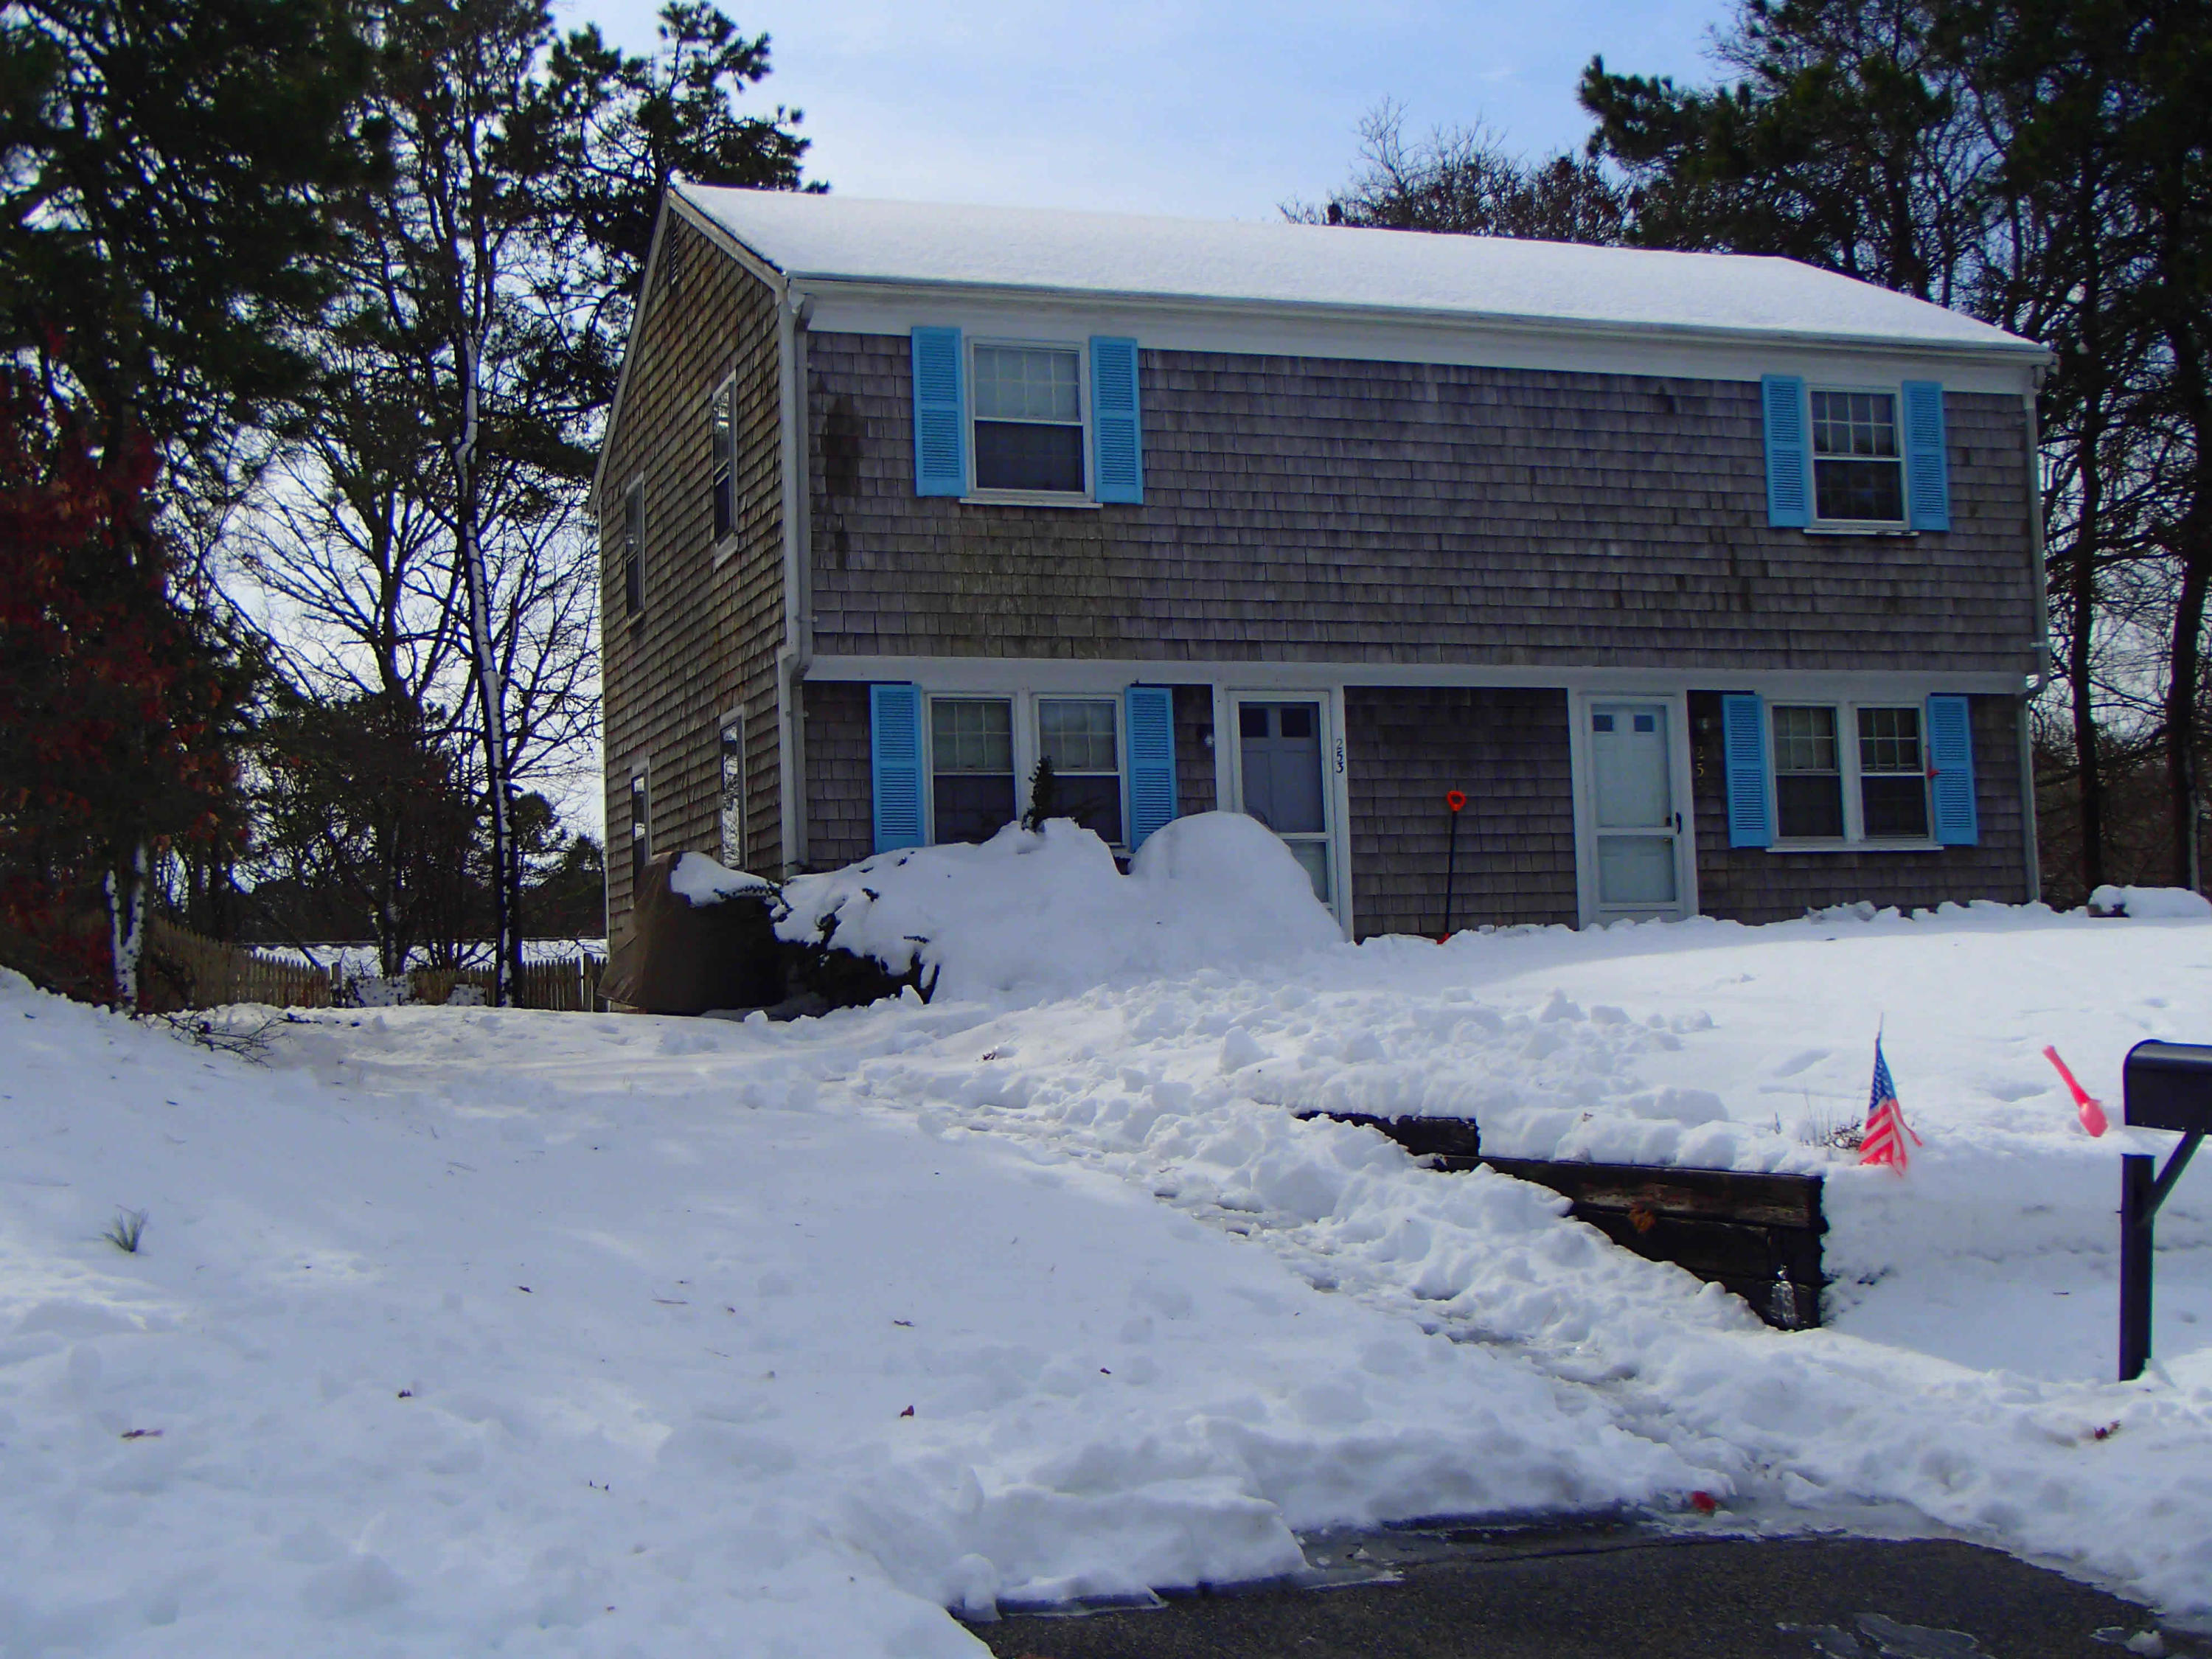 253-255 Old Townhouse Road, West Yarmouth MA, 02673 details